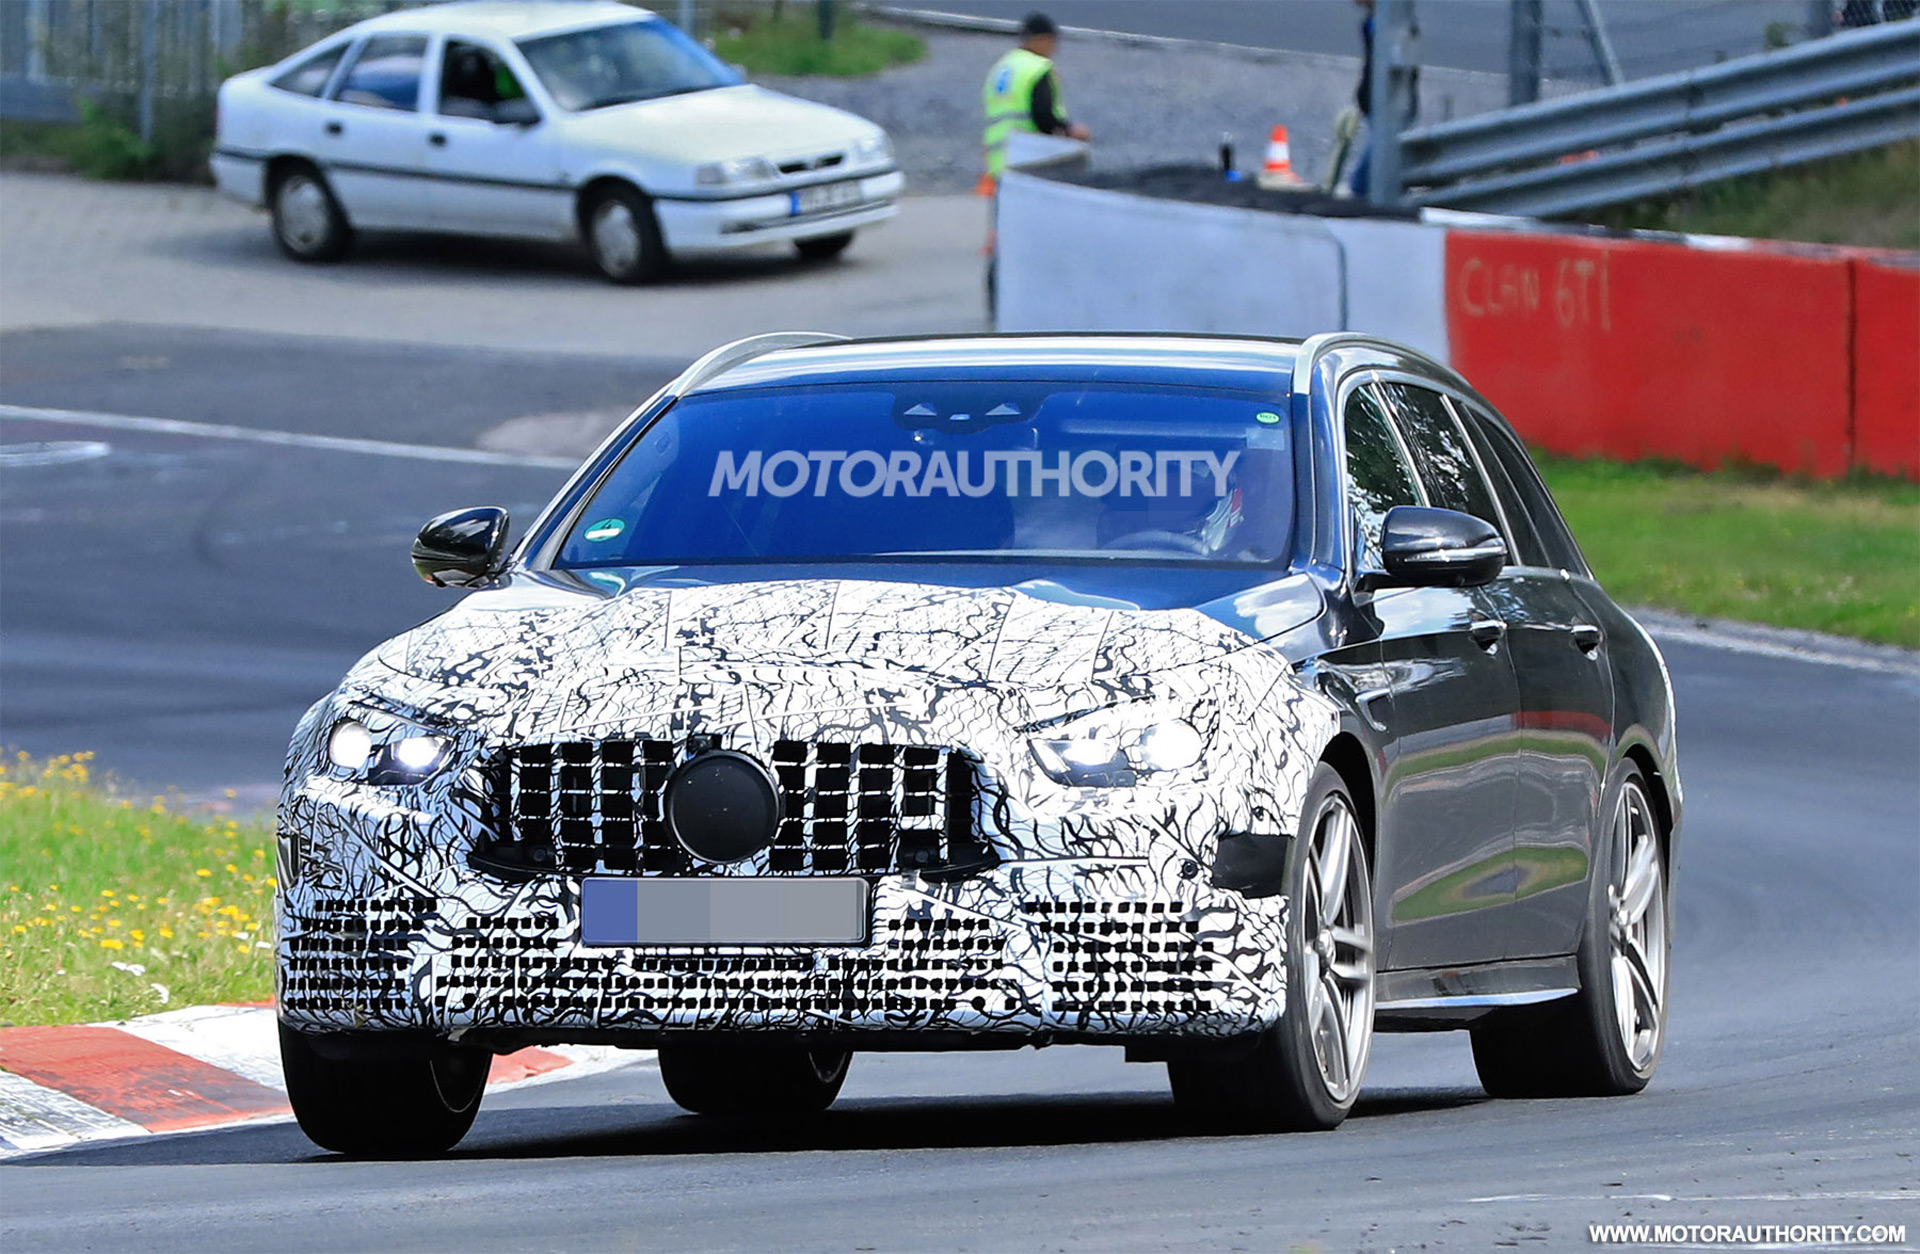 2020 - [Mercedes-Benz] Classe E restylée  - Page 2 2021-mercedes-amg-e63-wagon-facelift-spy-shots--photo-credit-s-baldauf-sb-medien_100711680_h